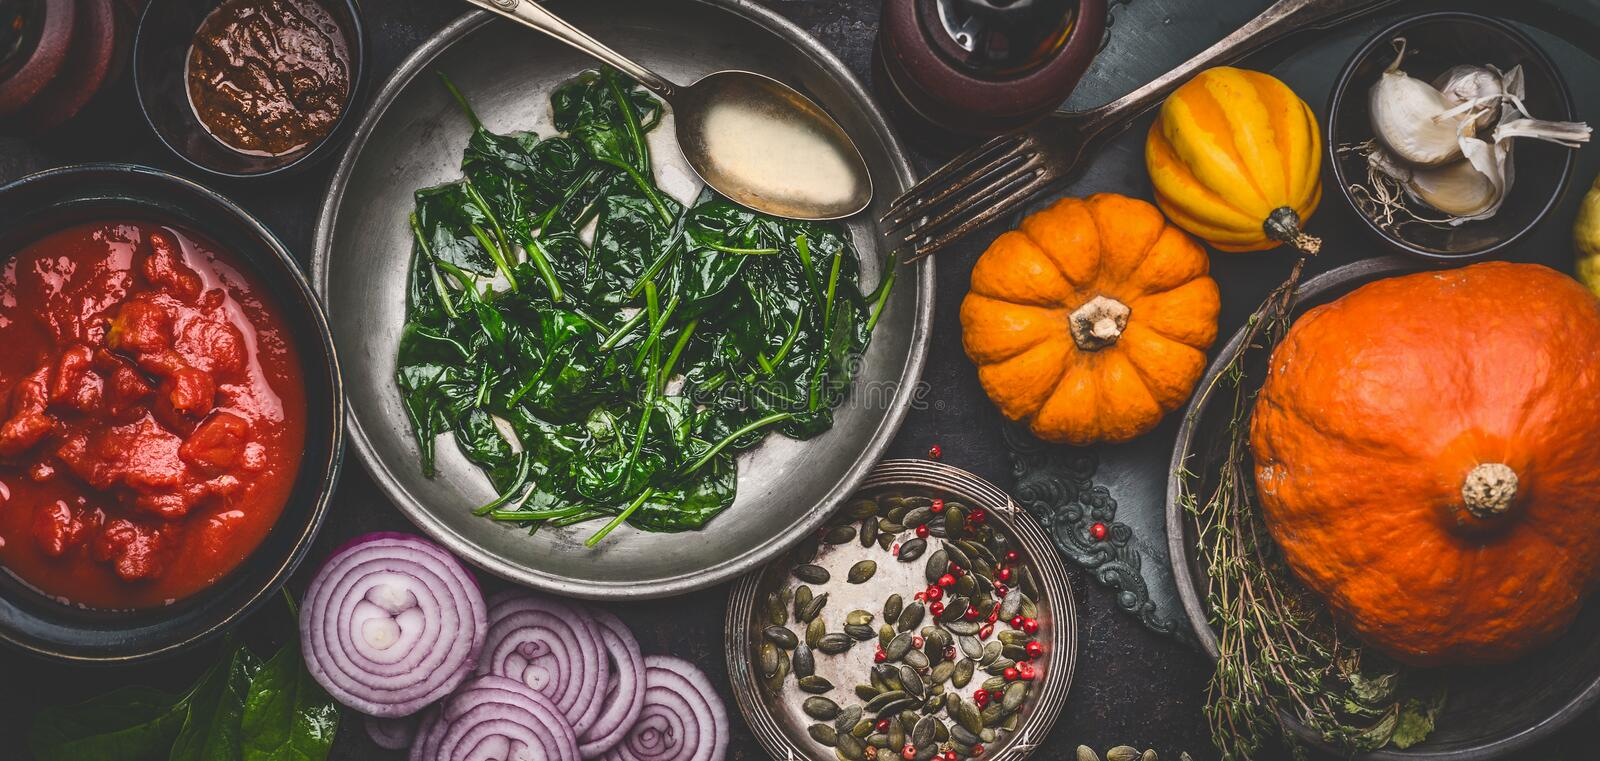 Healthy vegetarian cooking ingredients for tasty pumpkin dishes recipes in bowls : tomato sauces, spinach, sliced onion, pumpkin s. Eeds, top view, banner. Clean royalty free stock images